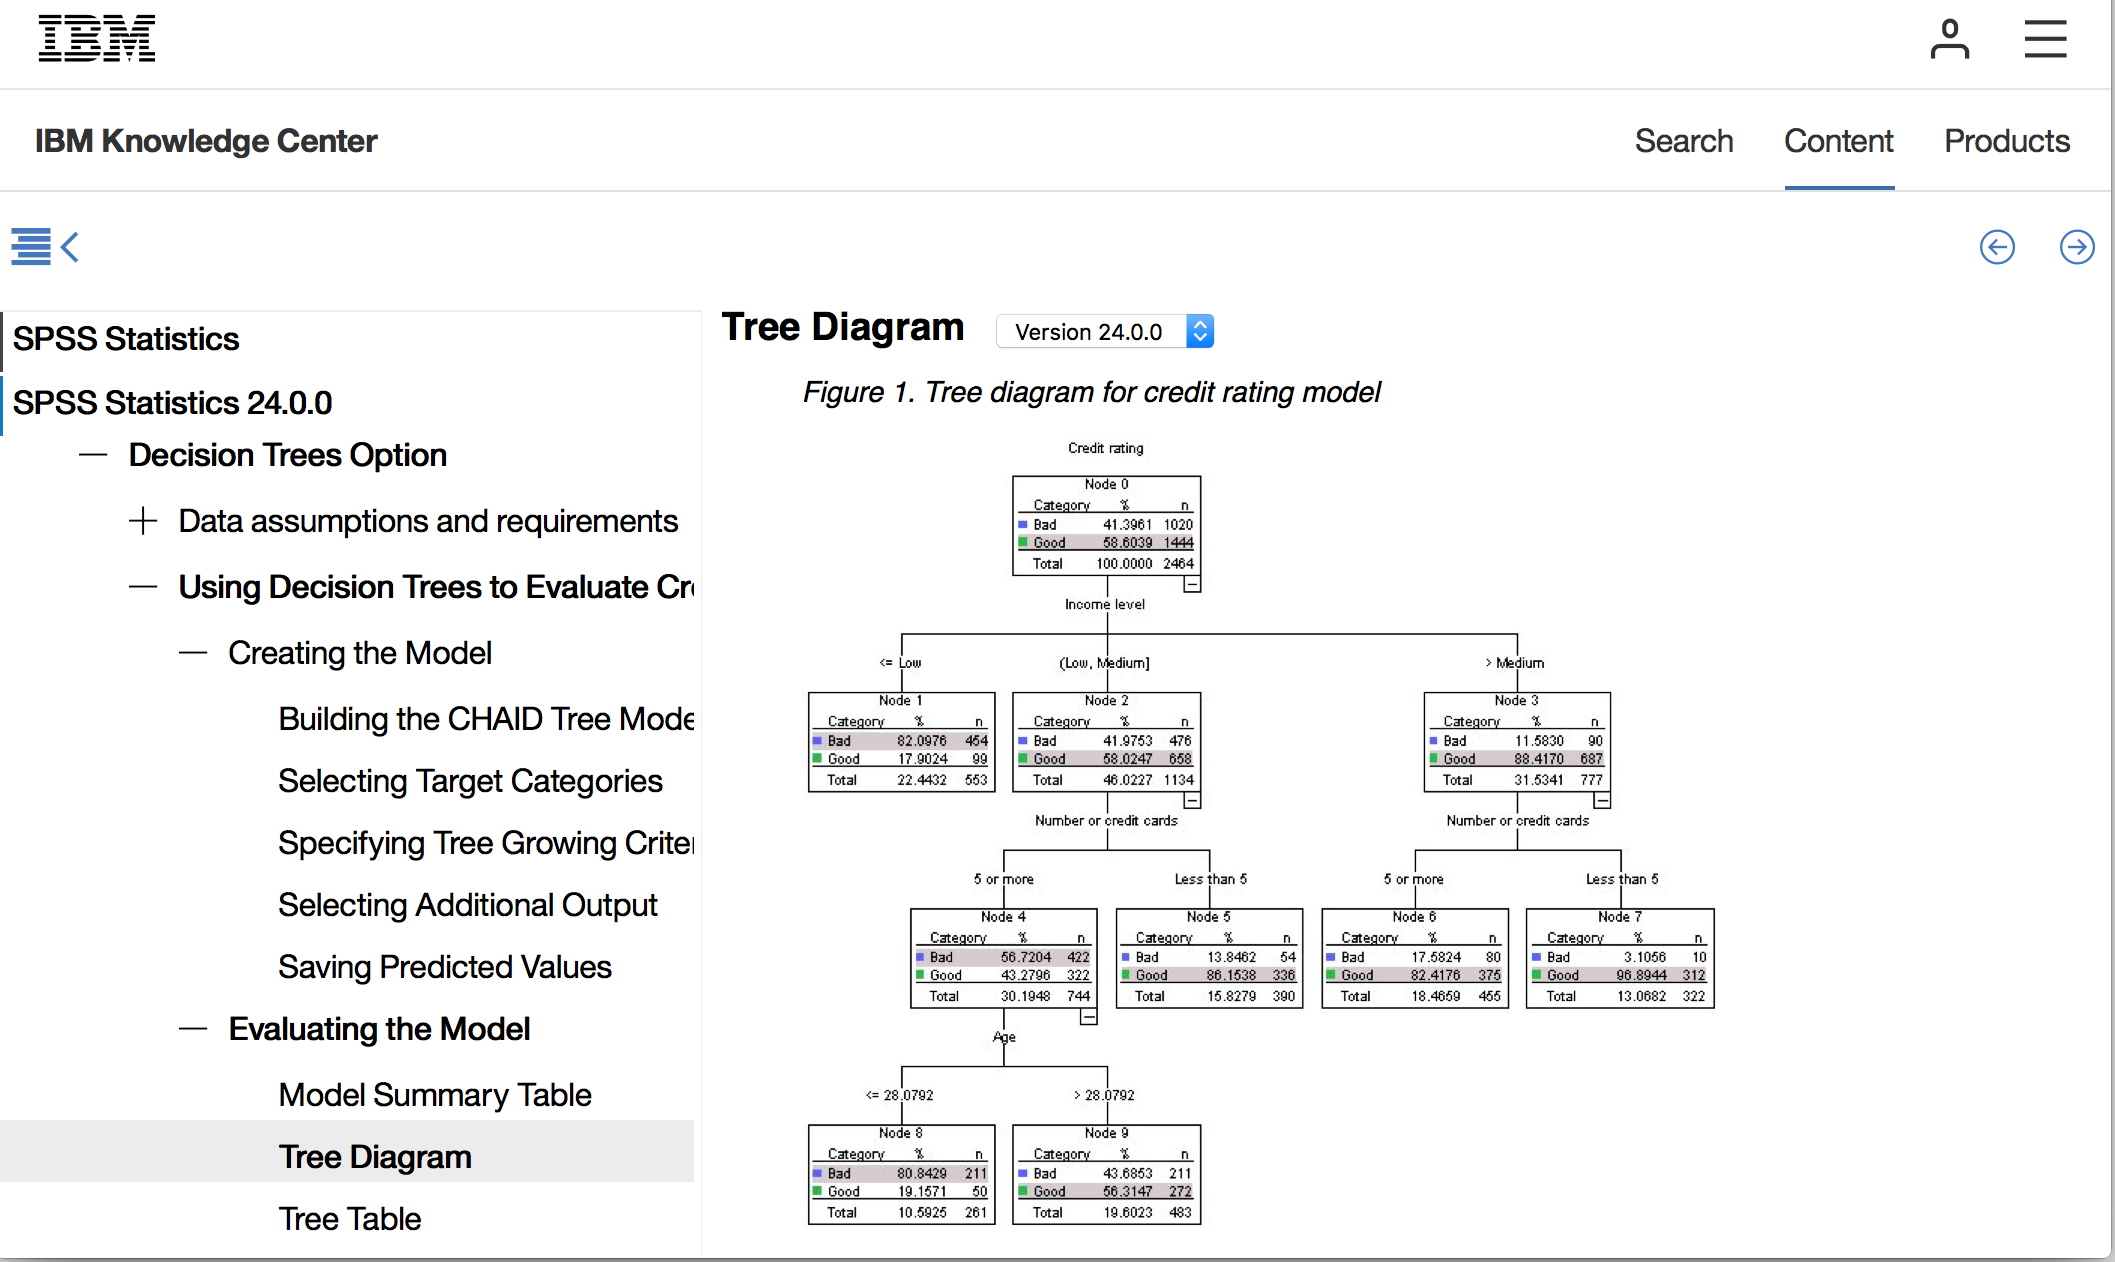 Link to Trees Case Study